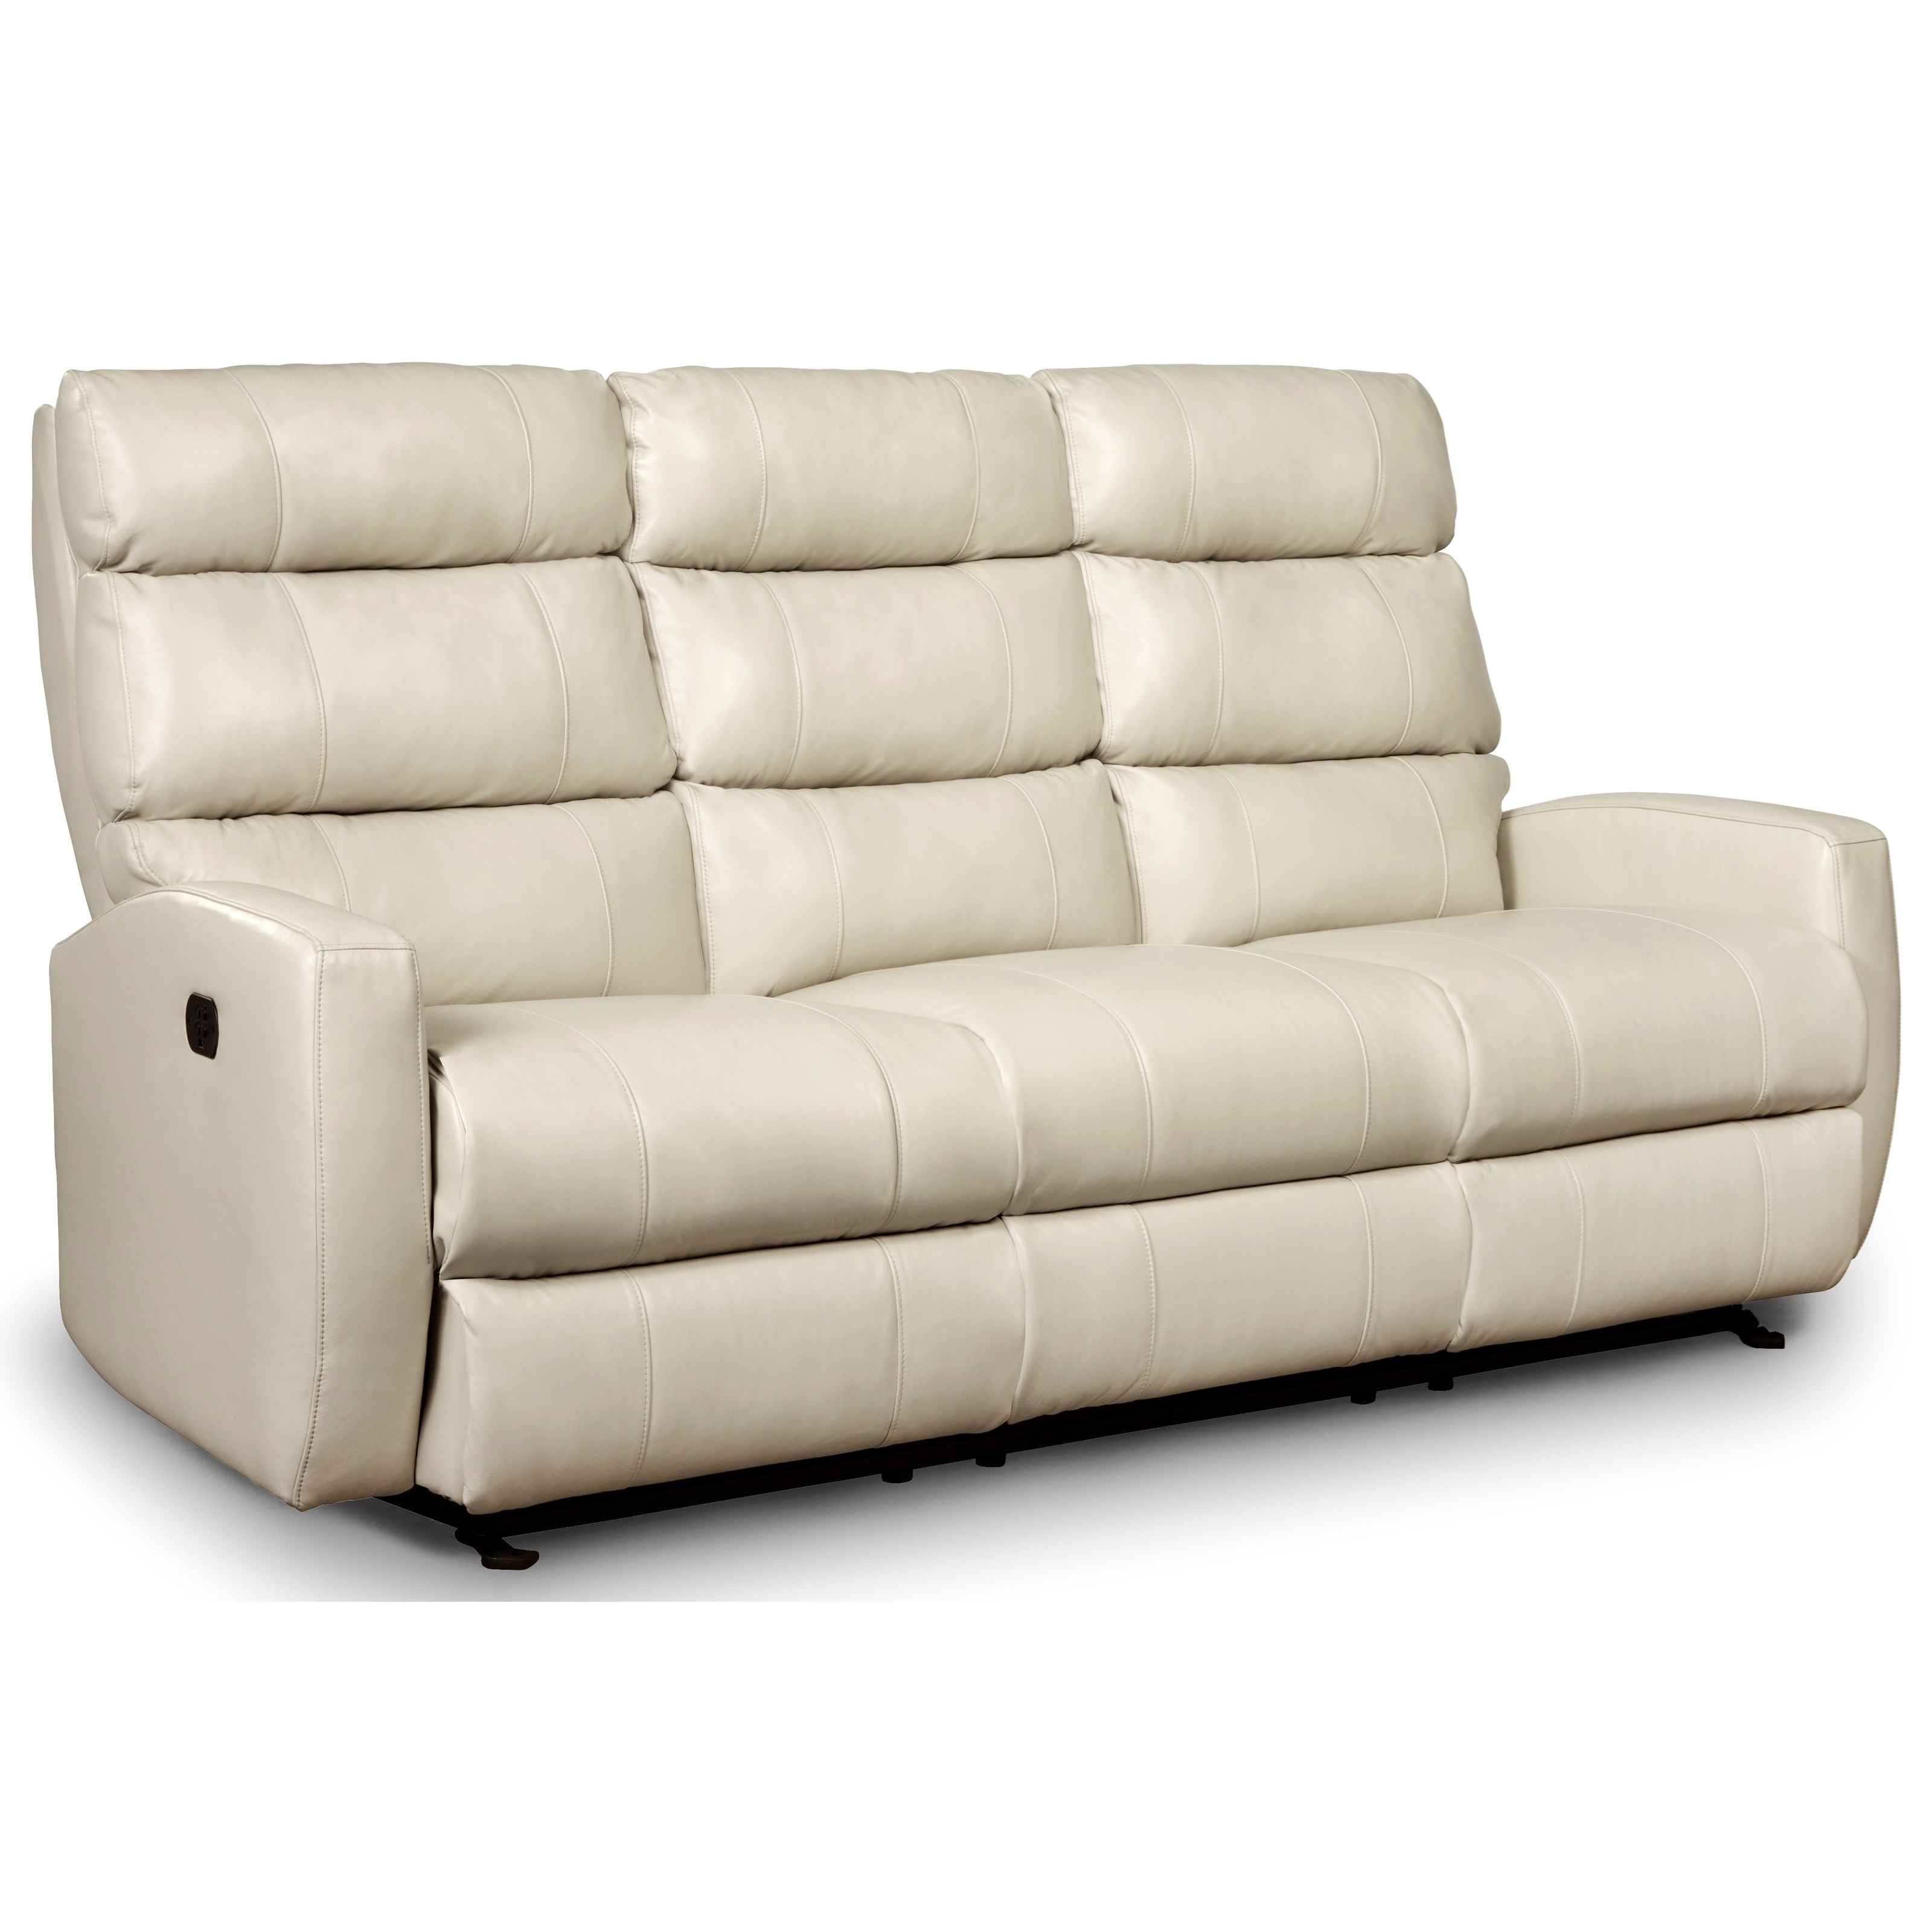 Terrific 80 Inch Power Reclining Wall Saver Sofa By Best Home Forskolin Free Trial Chair Design Images Forskolin Free Trialorg